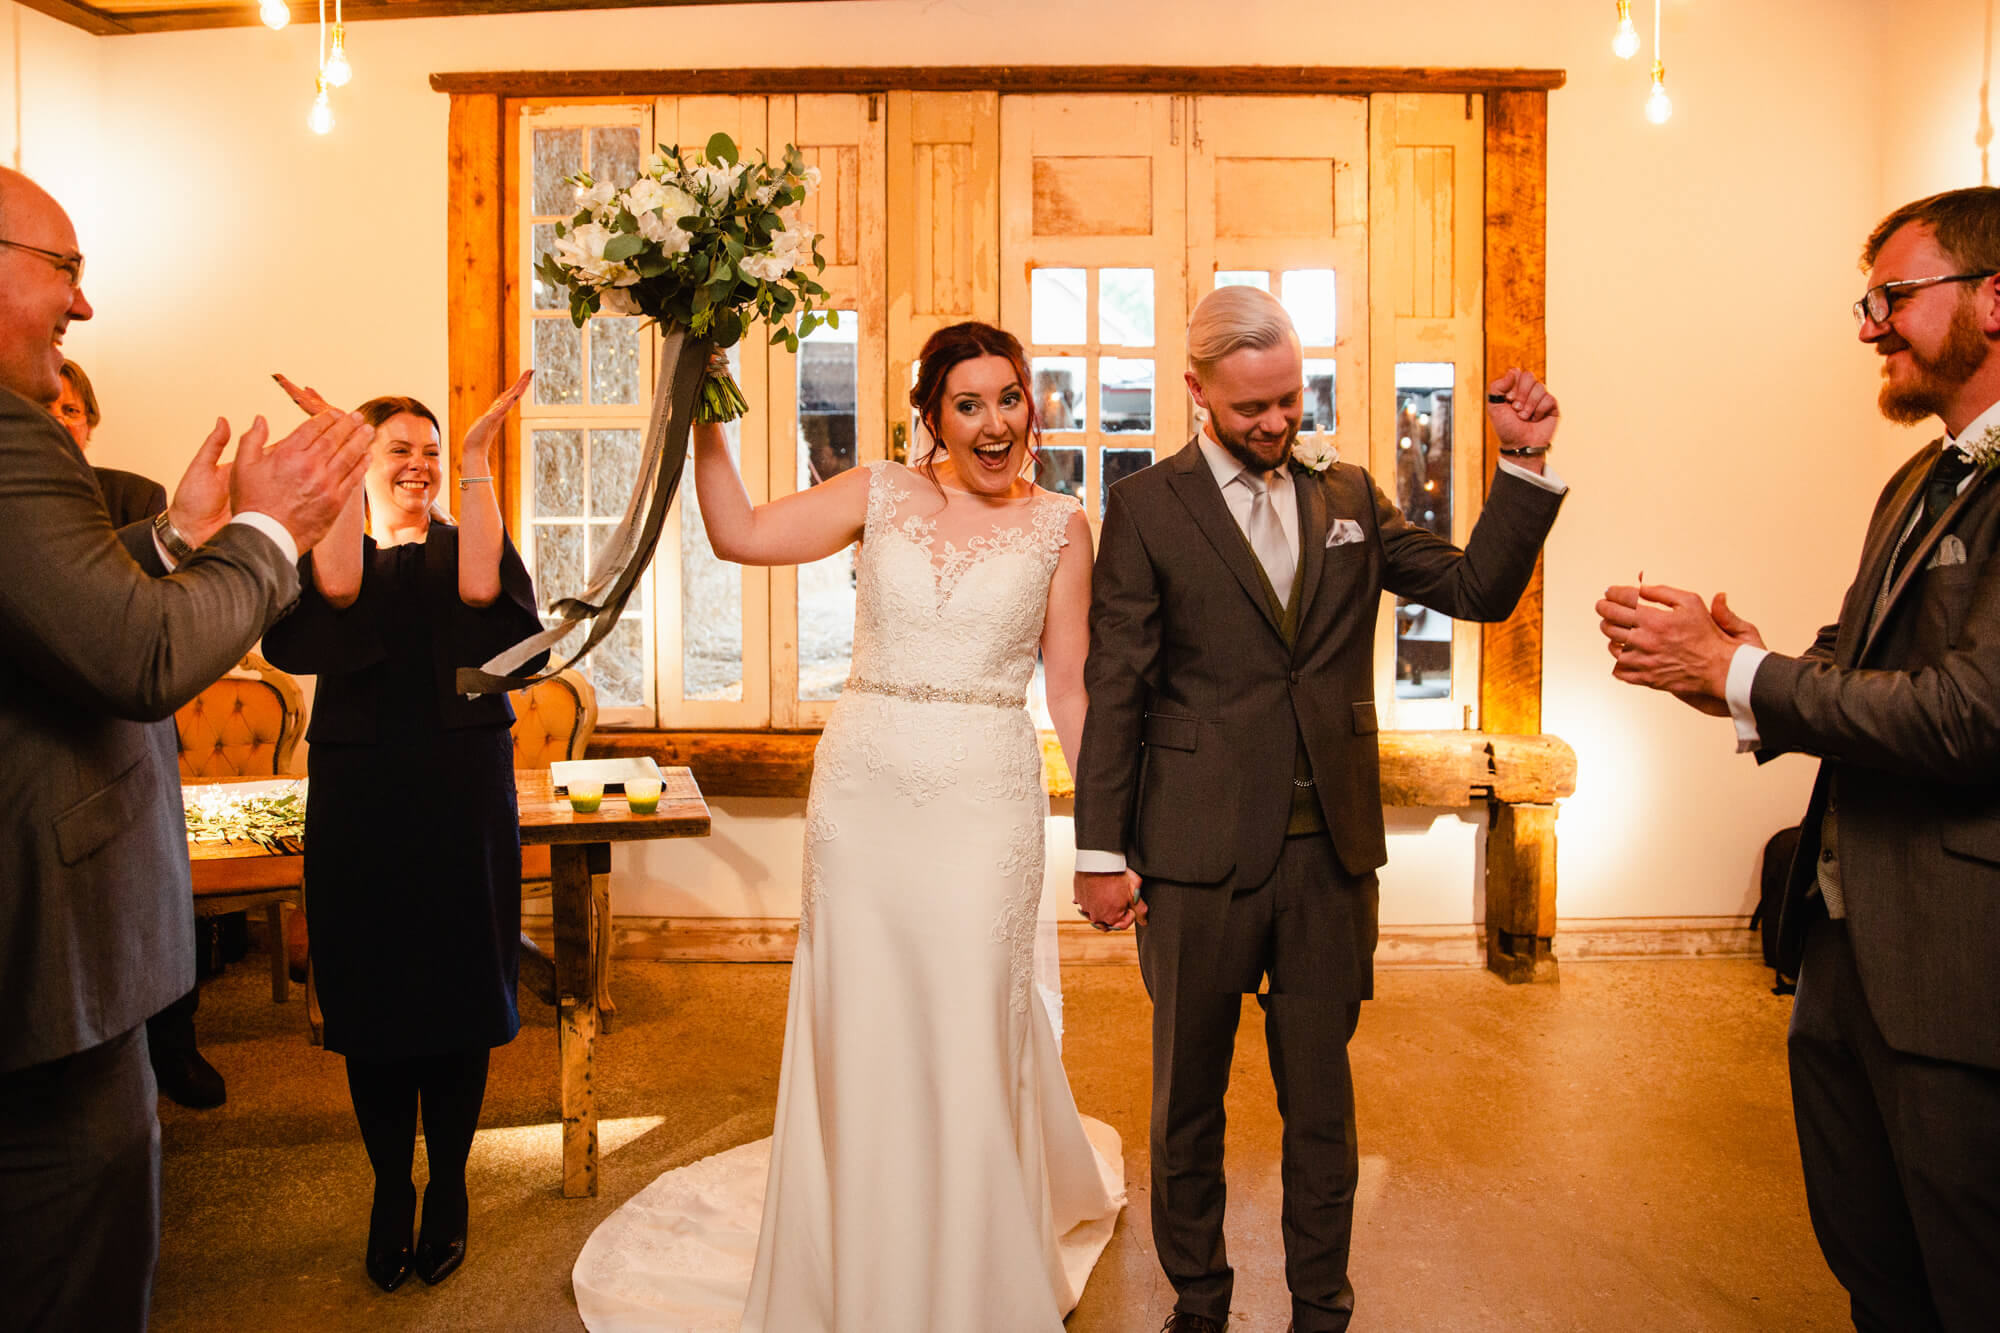 wedding processional begins at top of aisle as newly married couple celebrate with family and friends